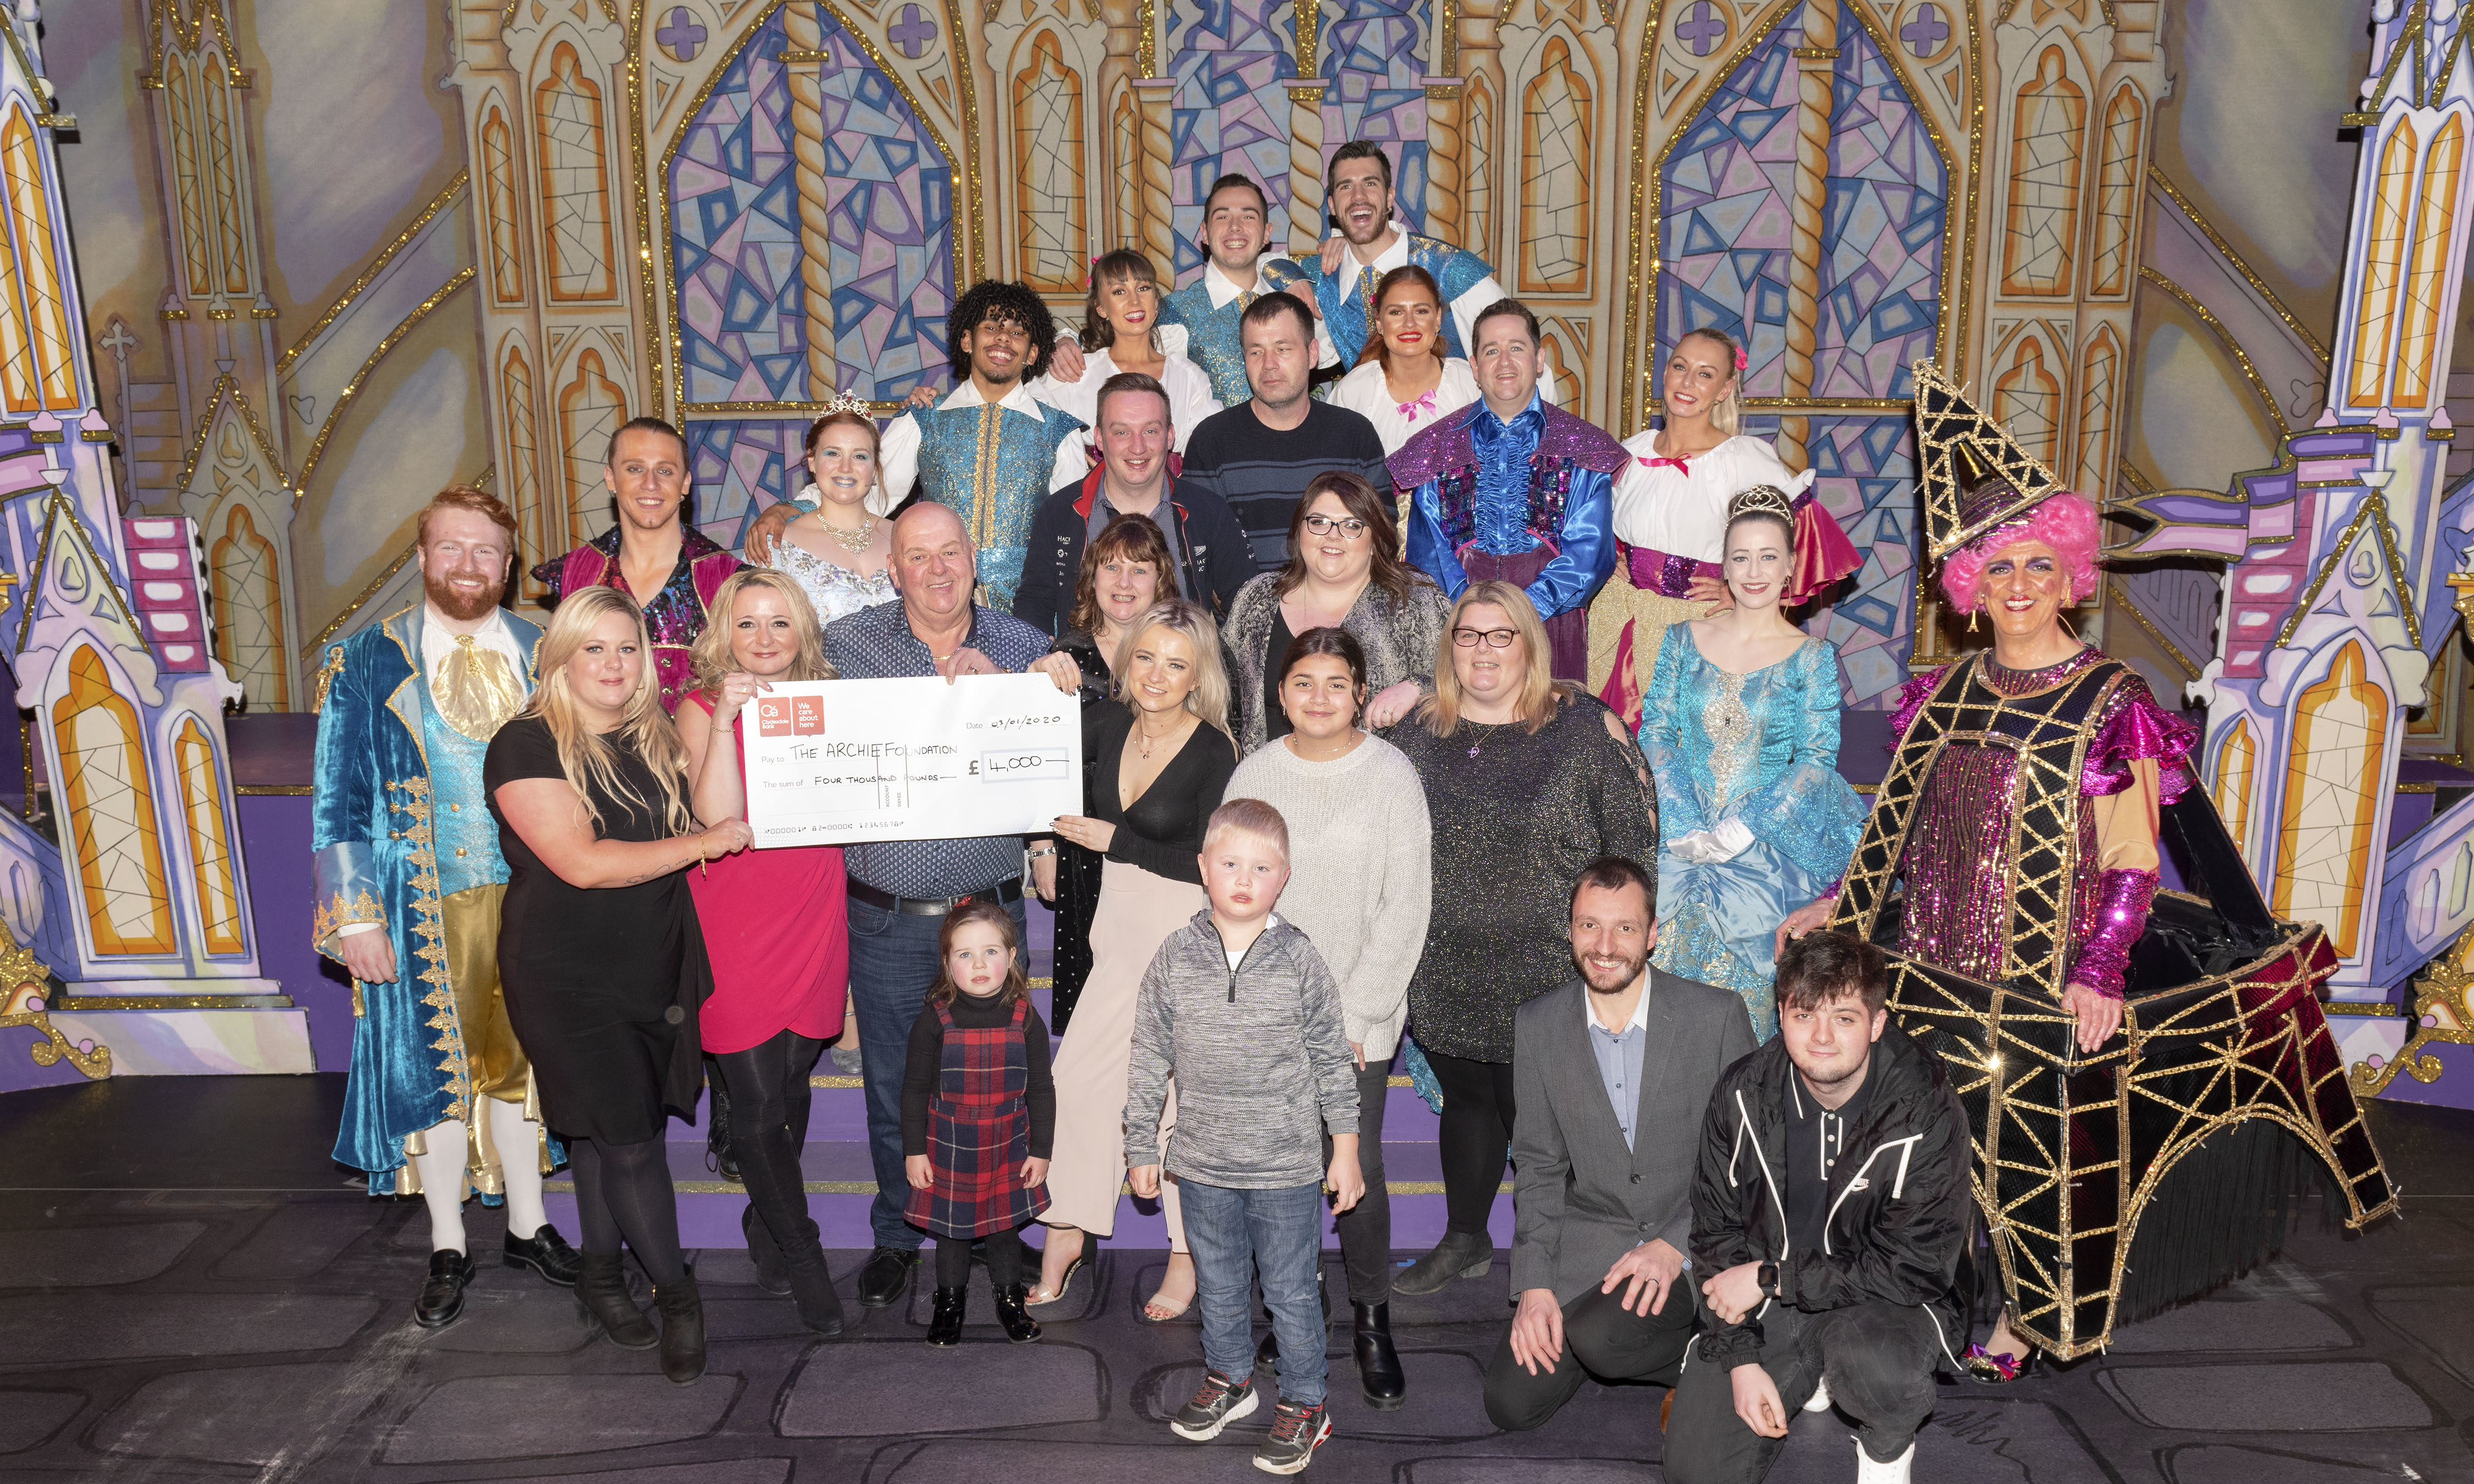 Donald Mathieson with the £4000 cheque presented to Mary Nimmo and Archie Highland fundraiser Dawn Cowie, alongside friends, family and cast members.